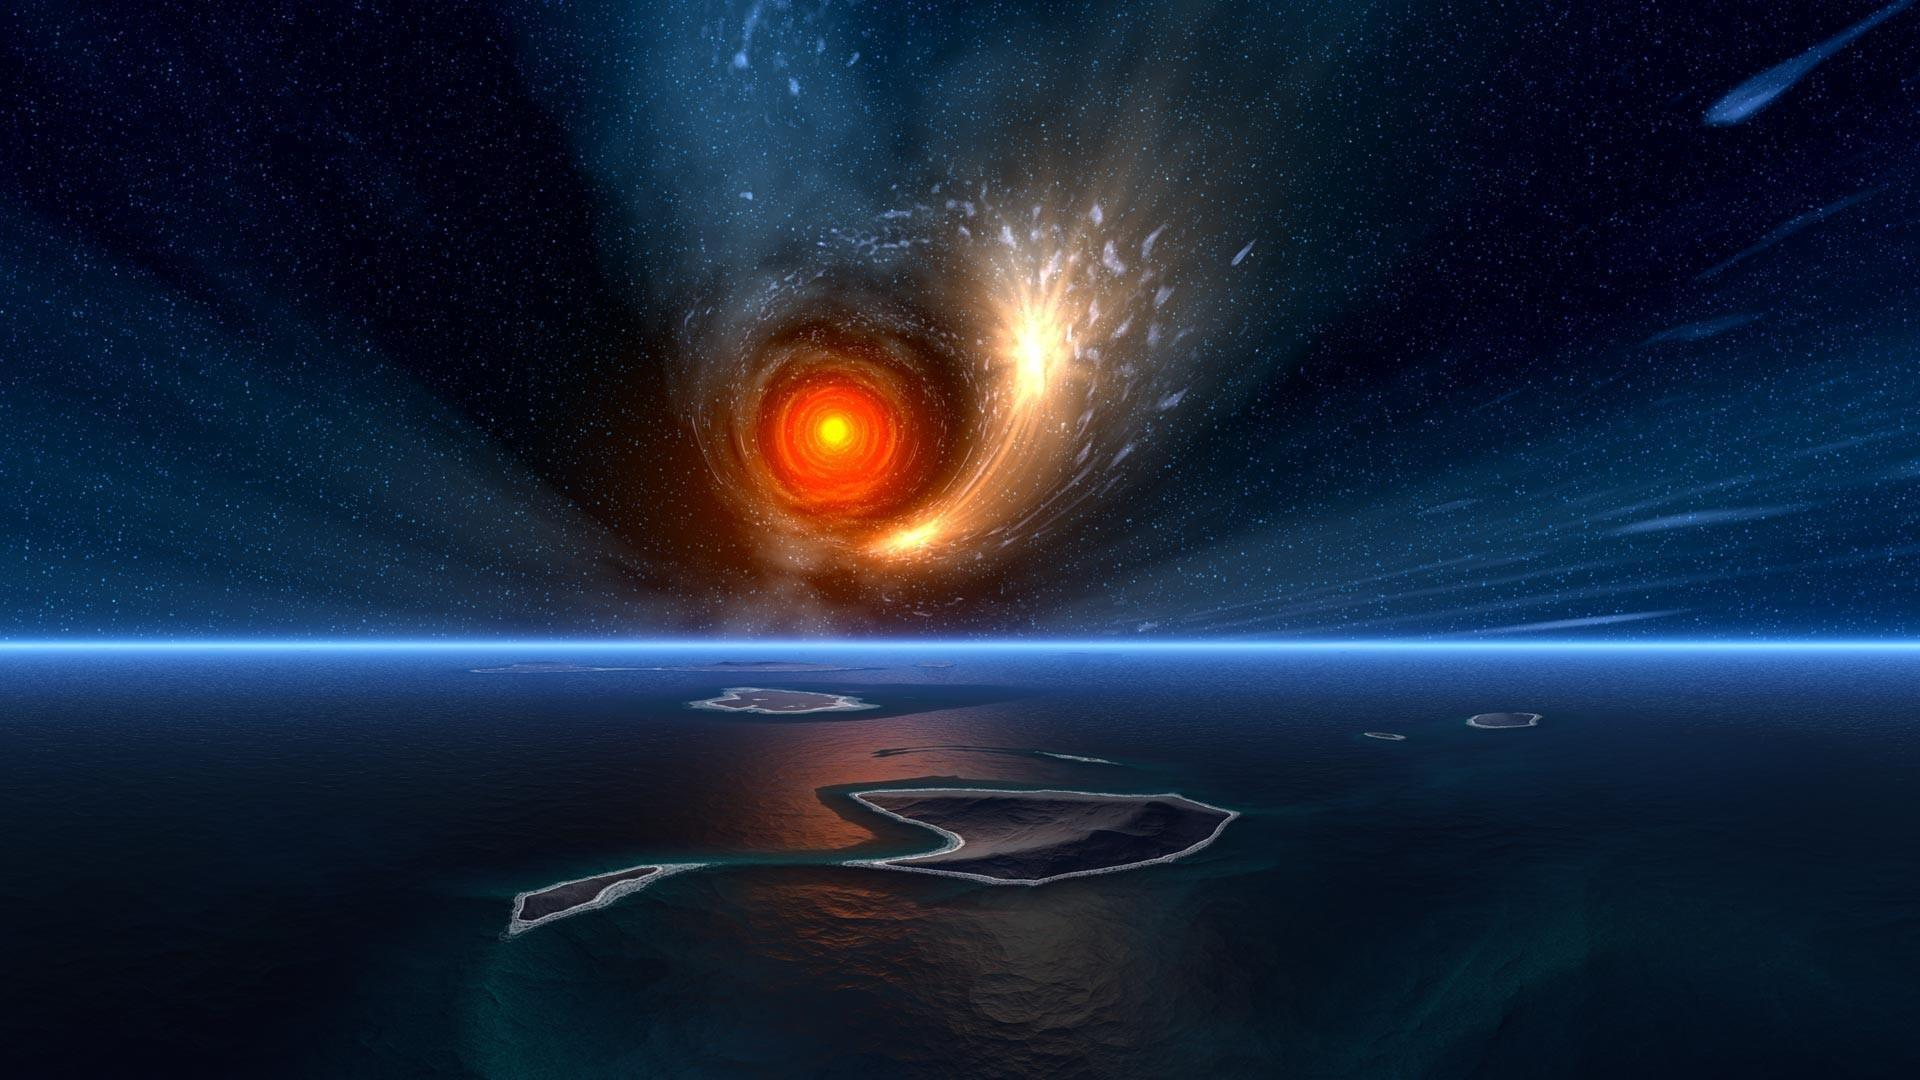 Black Hole Live Wallpaper For Android Apk Download